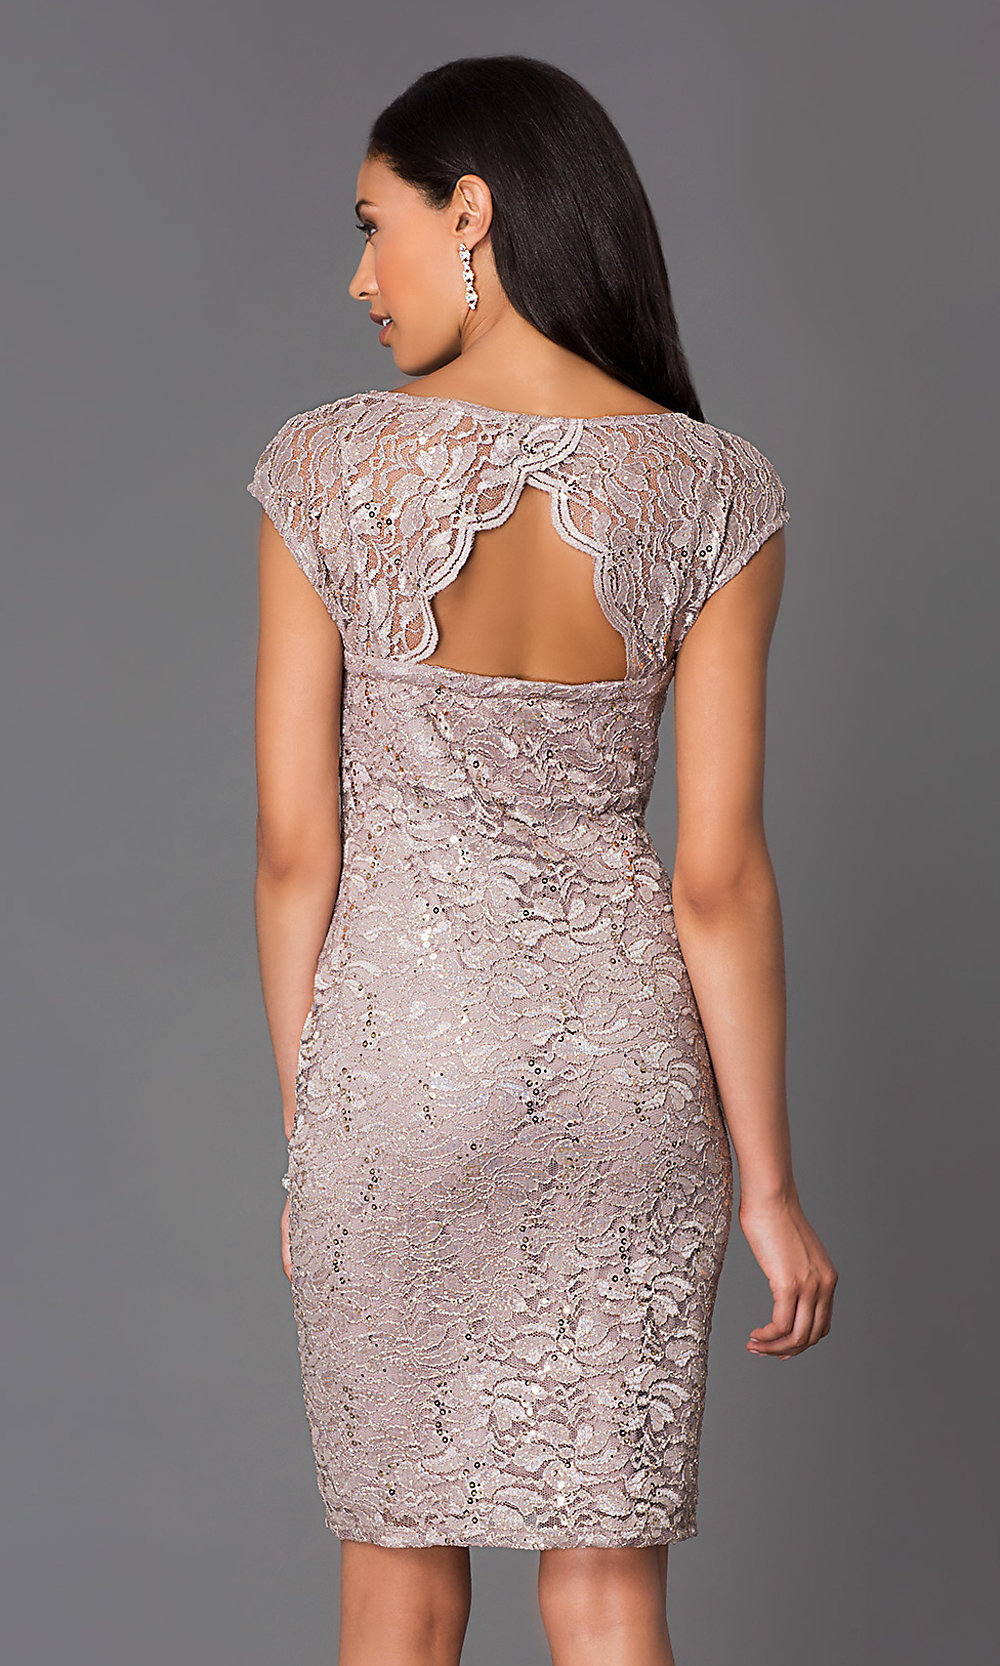 57d424db873f V-Neck Onyx Nite Lace Party Dress - PromGirl